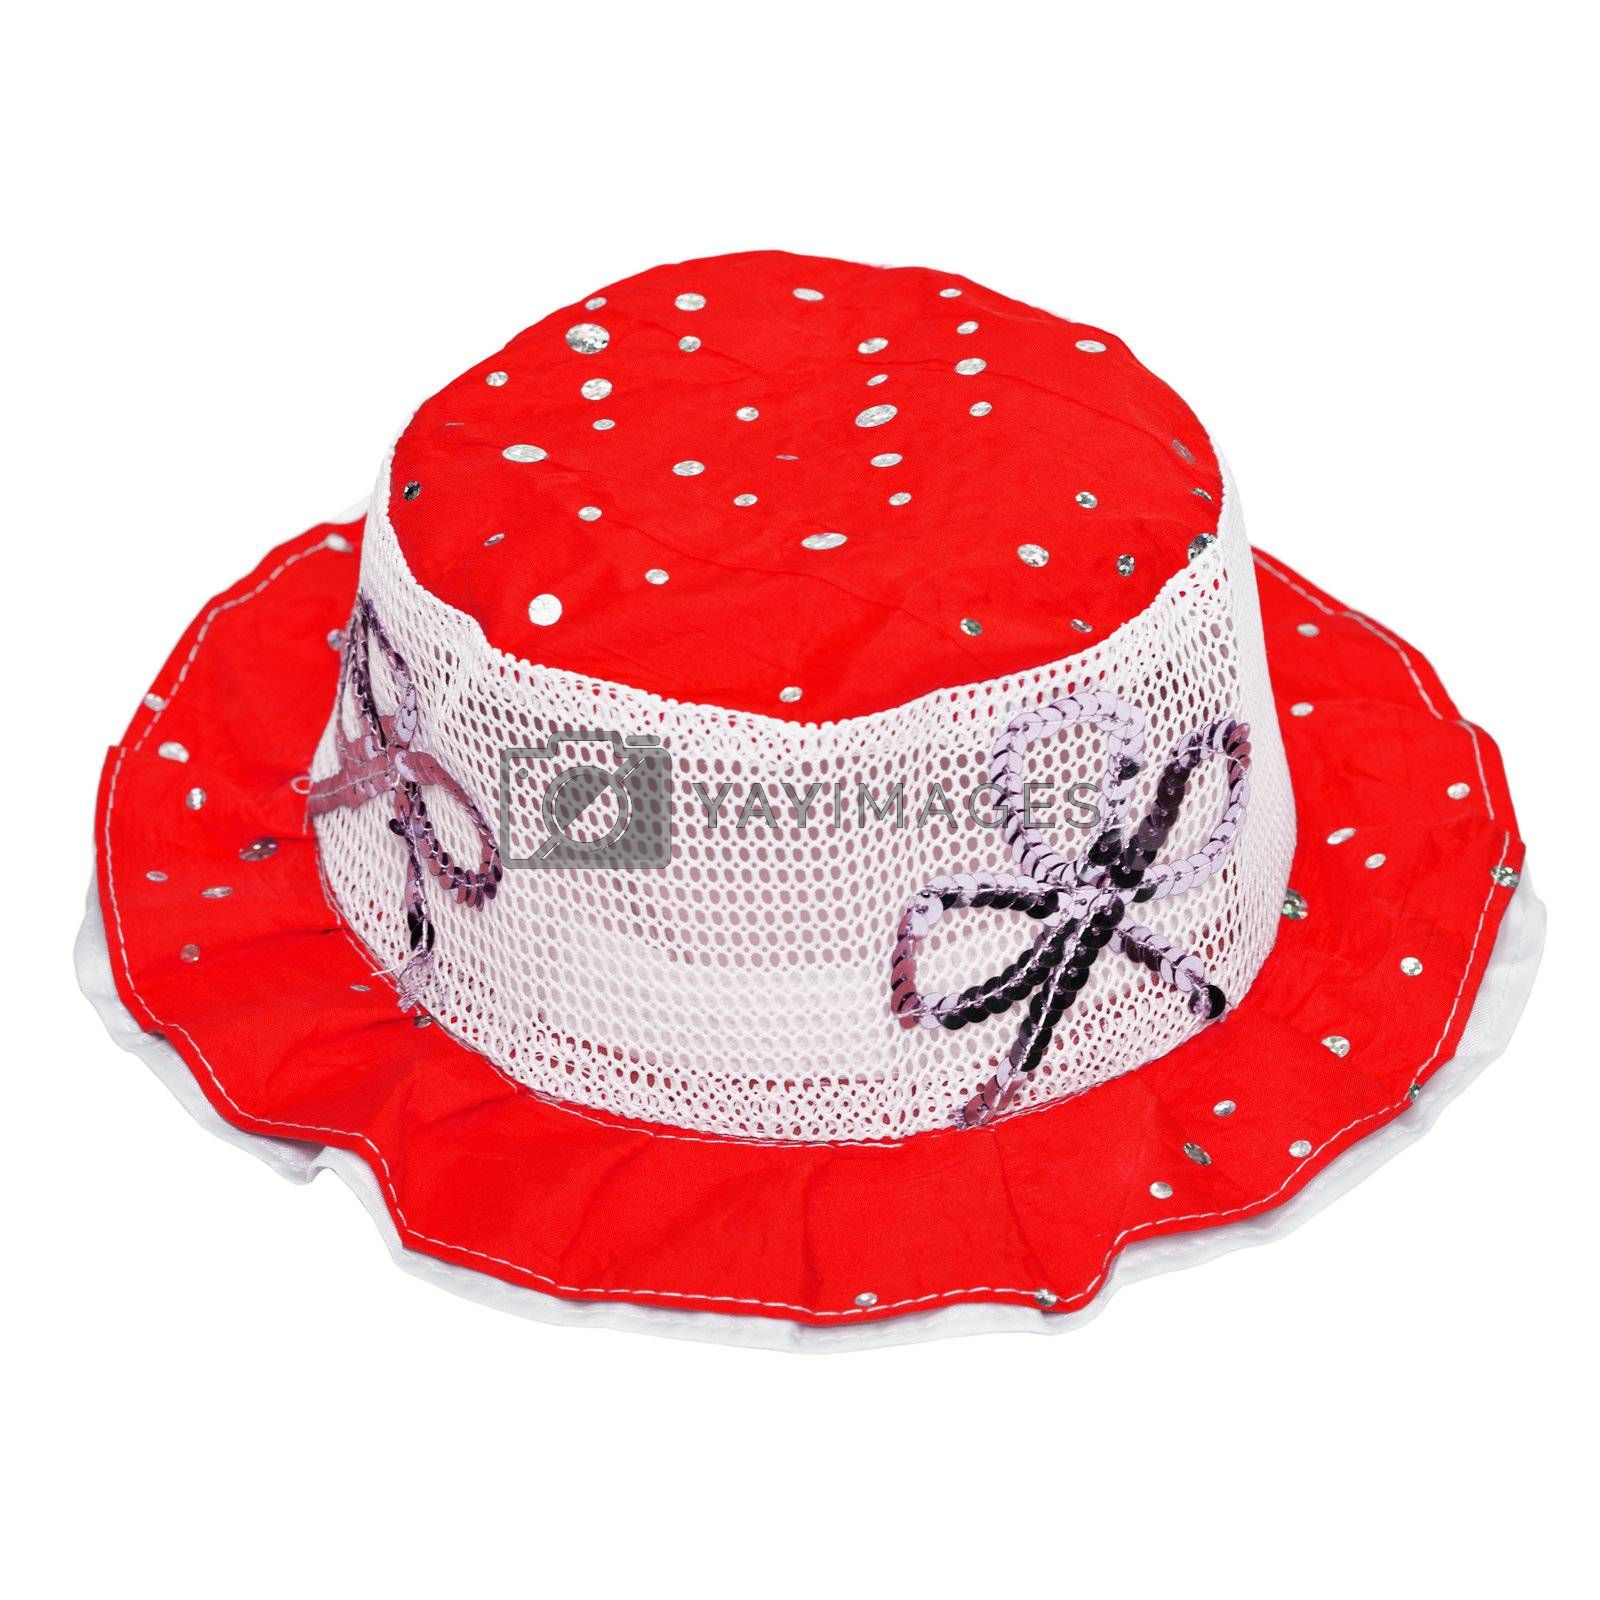 Red child hat isolated on white background